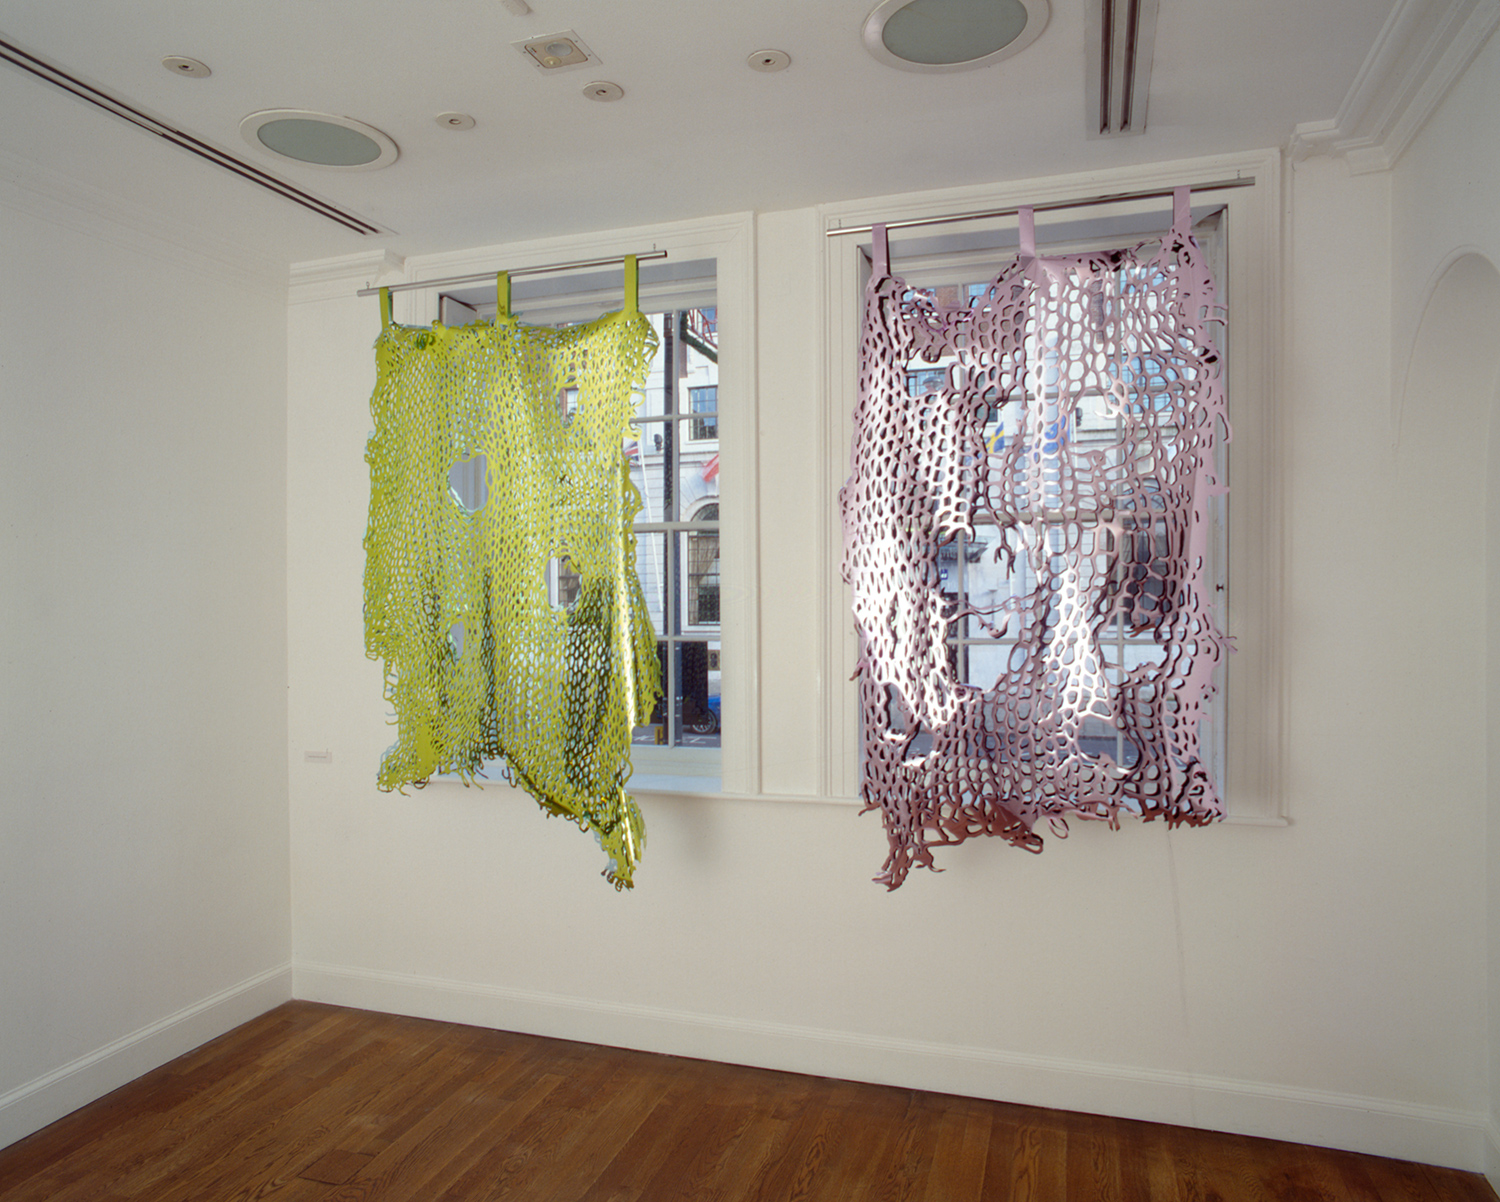 Installation view of Simon Periton: Flag 1